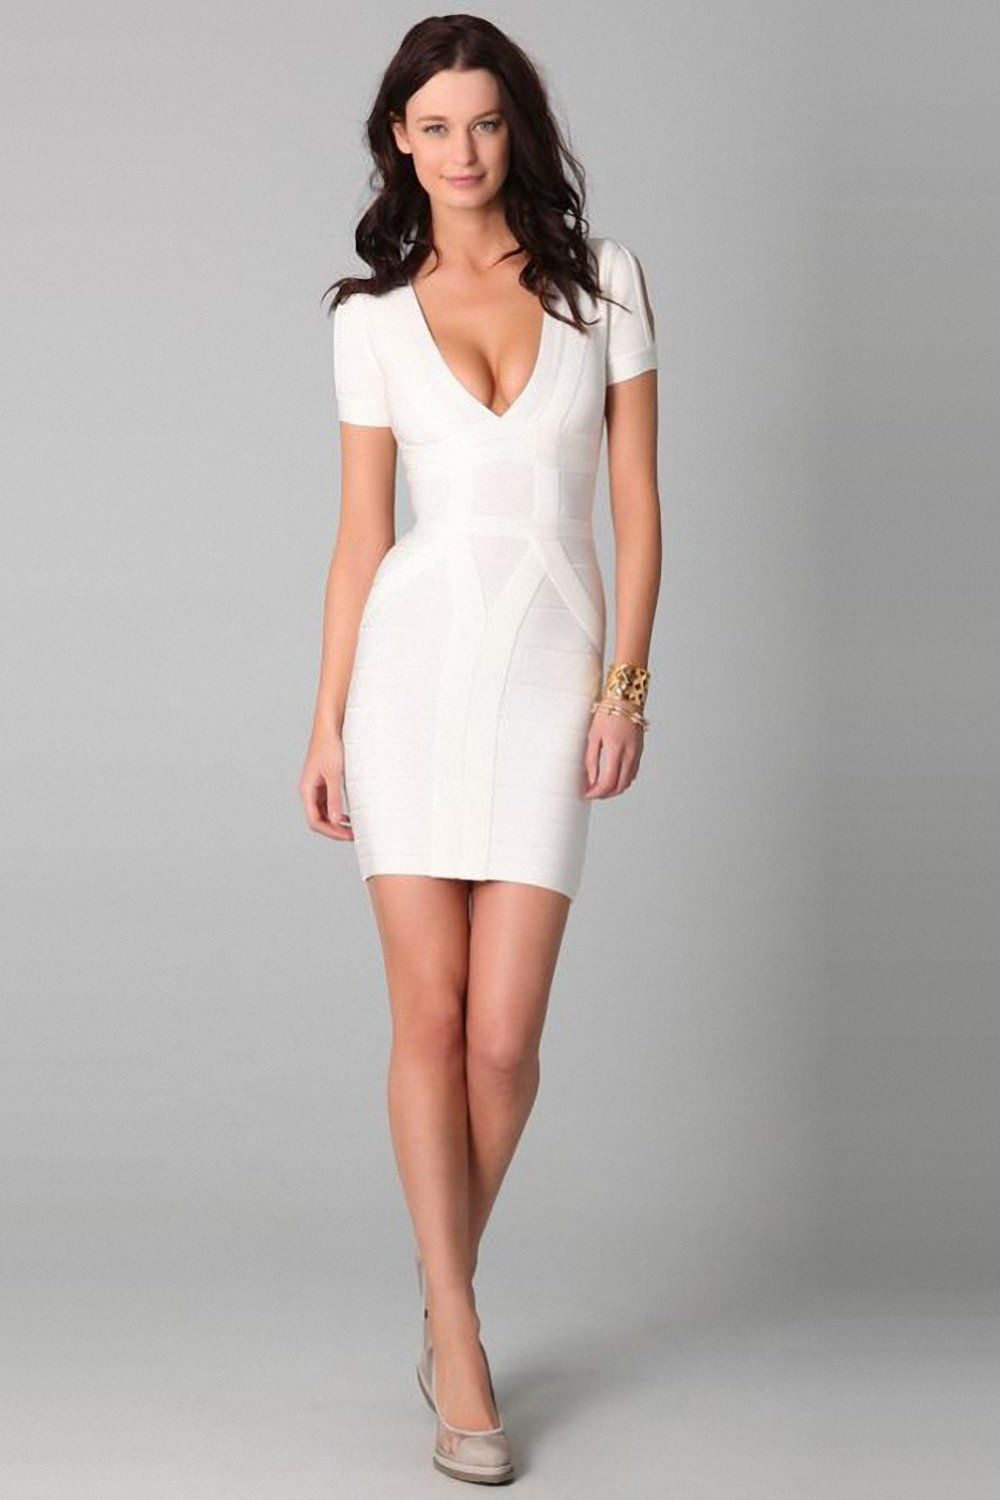 6cd4e082ae02 Taobaopit White V Neck Short Sleeves Bandage Dresses